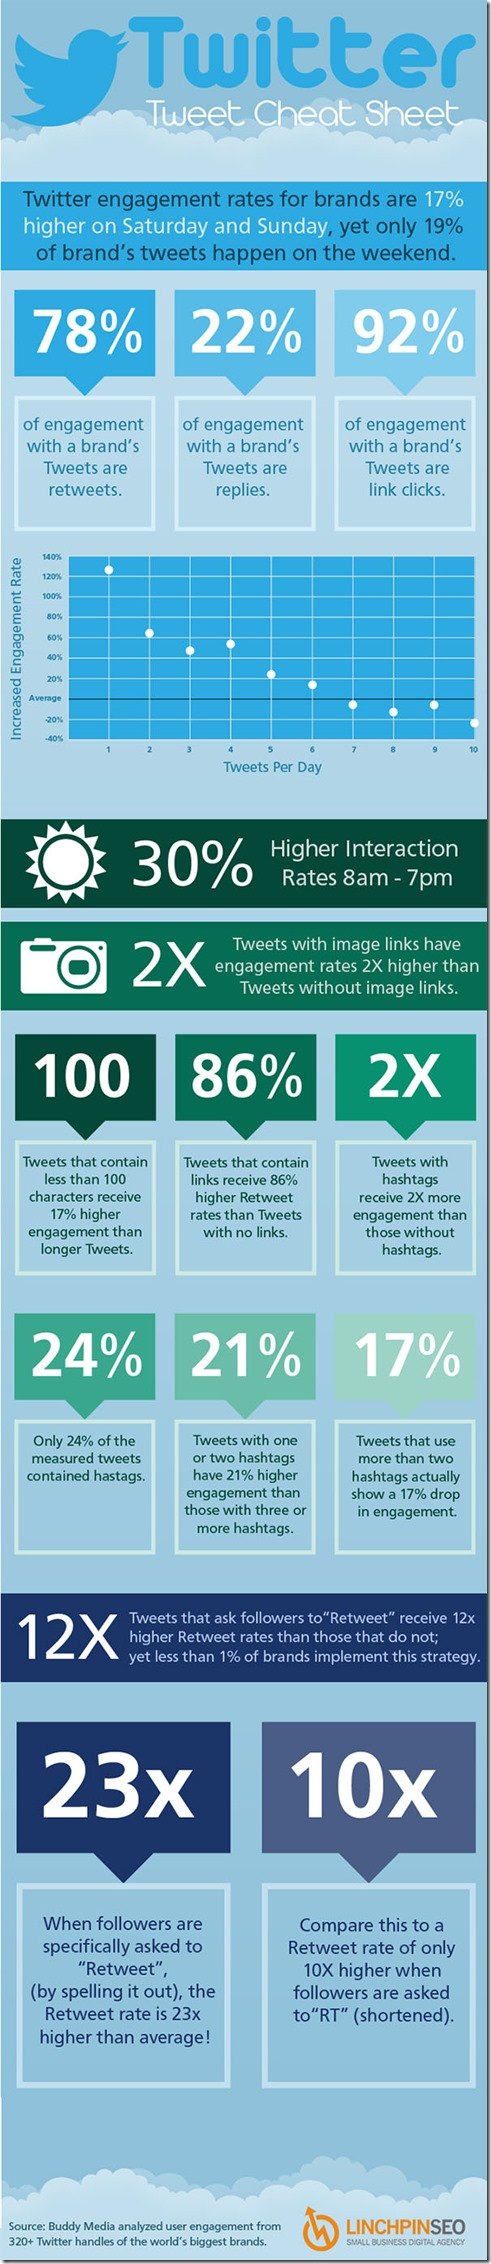 Infographic-Twitter-Tweet-Cheat-Sheet